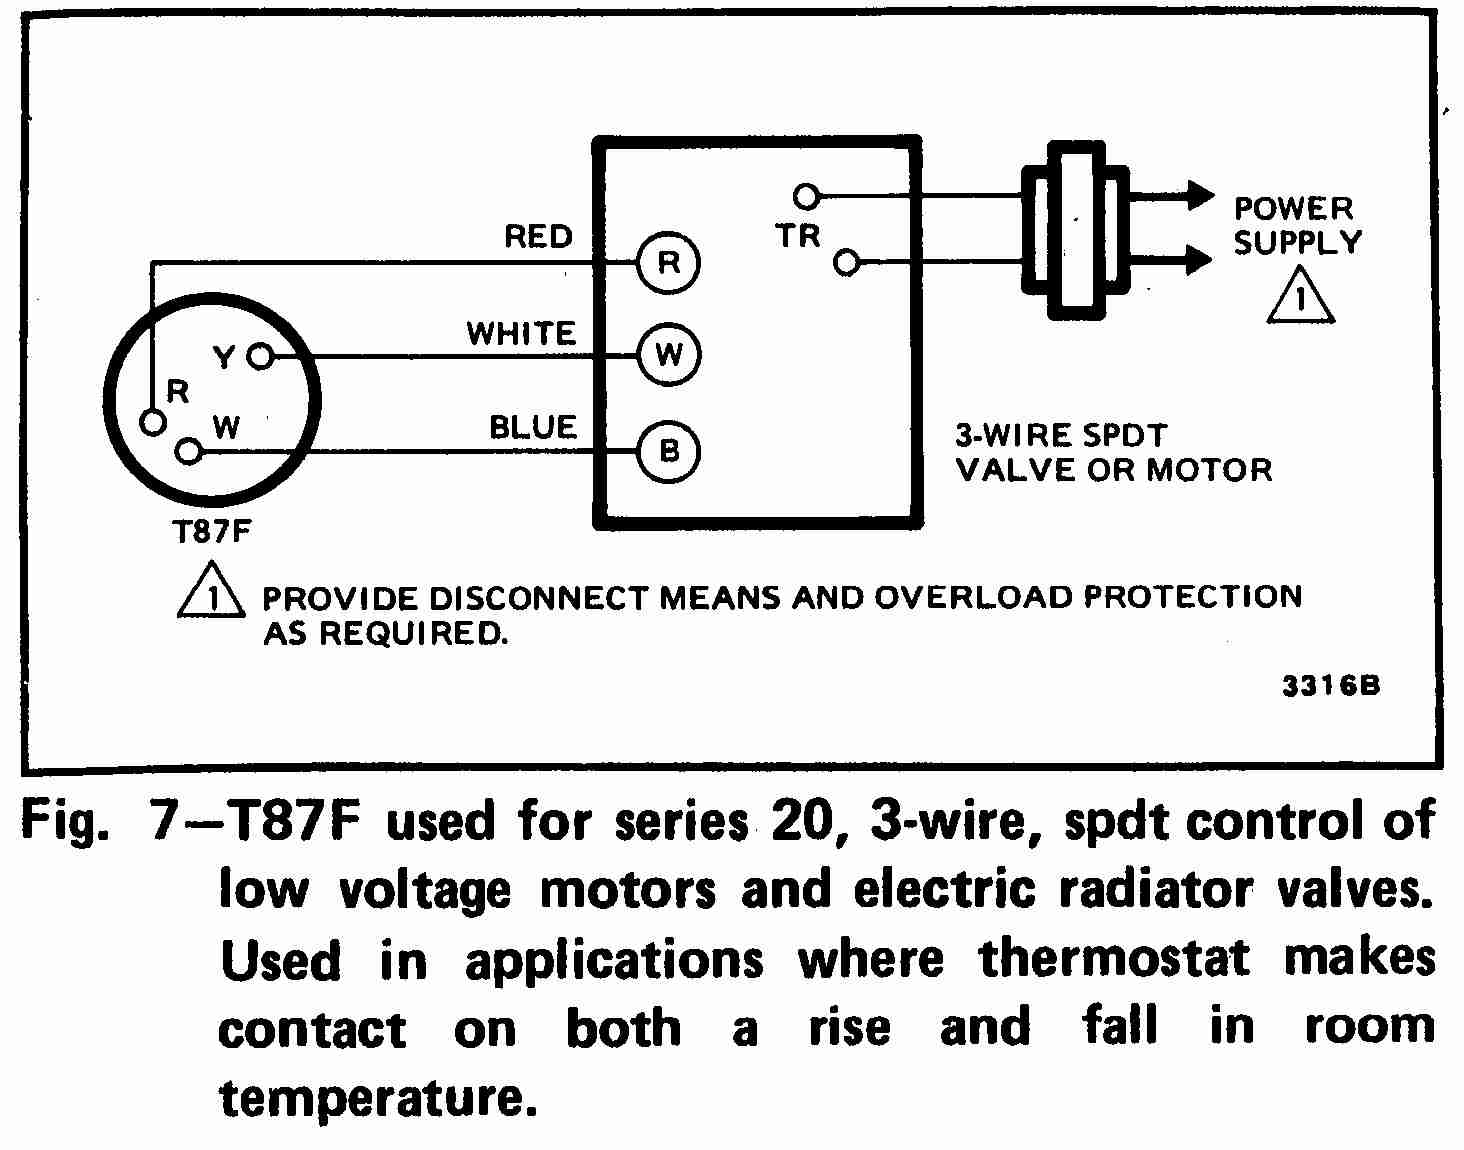 TT_T87F_0002_3W2_DJF room thermostat wiring diagrams for hvac systems wiring diagram honeywell thermostat at soozxer.org